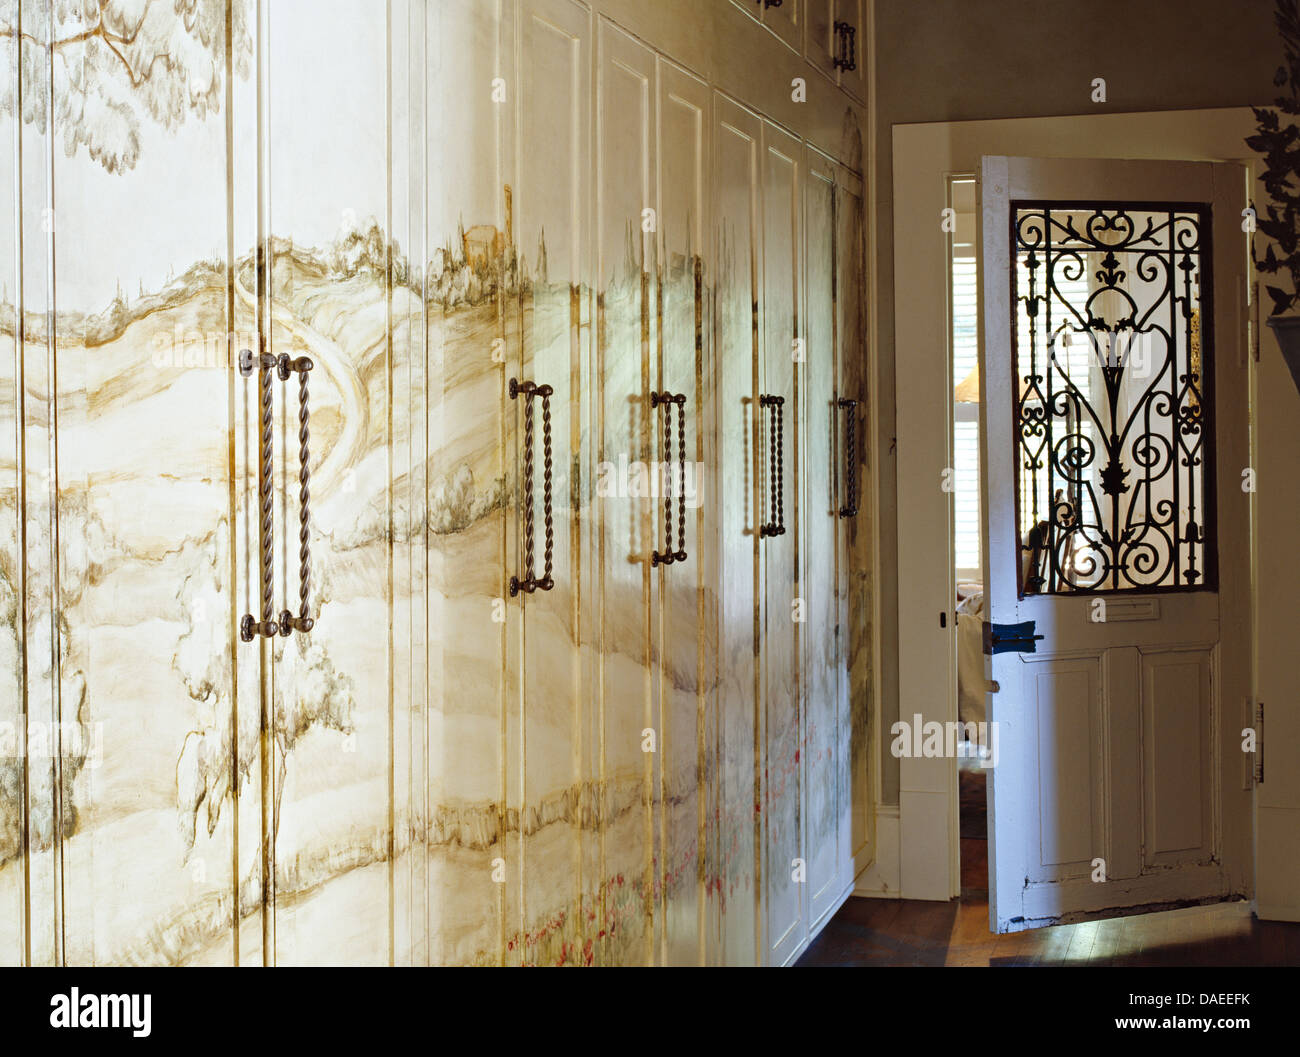 Lovely Landscape Mural Painted On Fitted Cupboards In Hall With Ornate Wrought  Iron Grille In Door